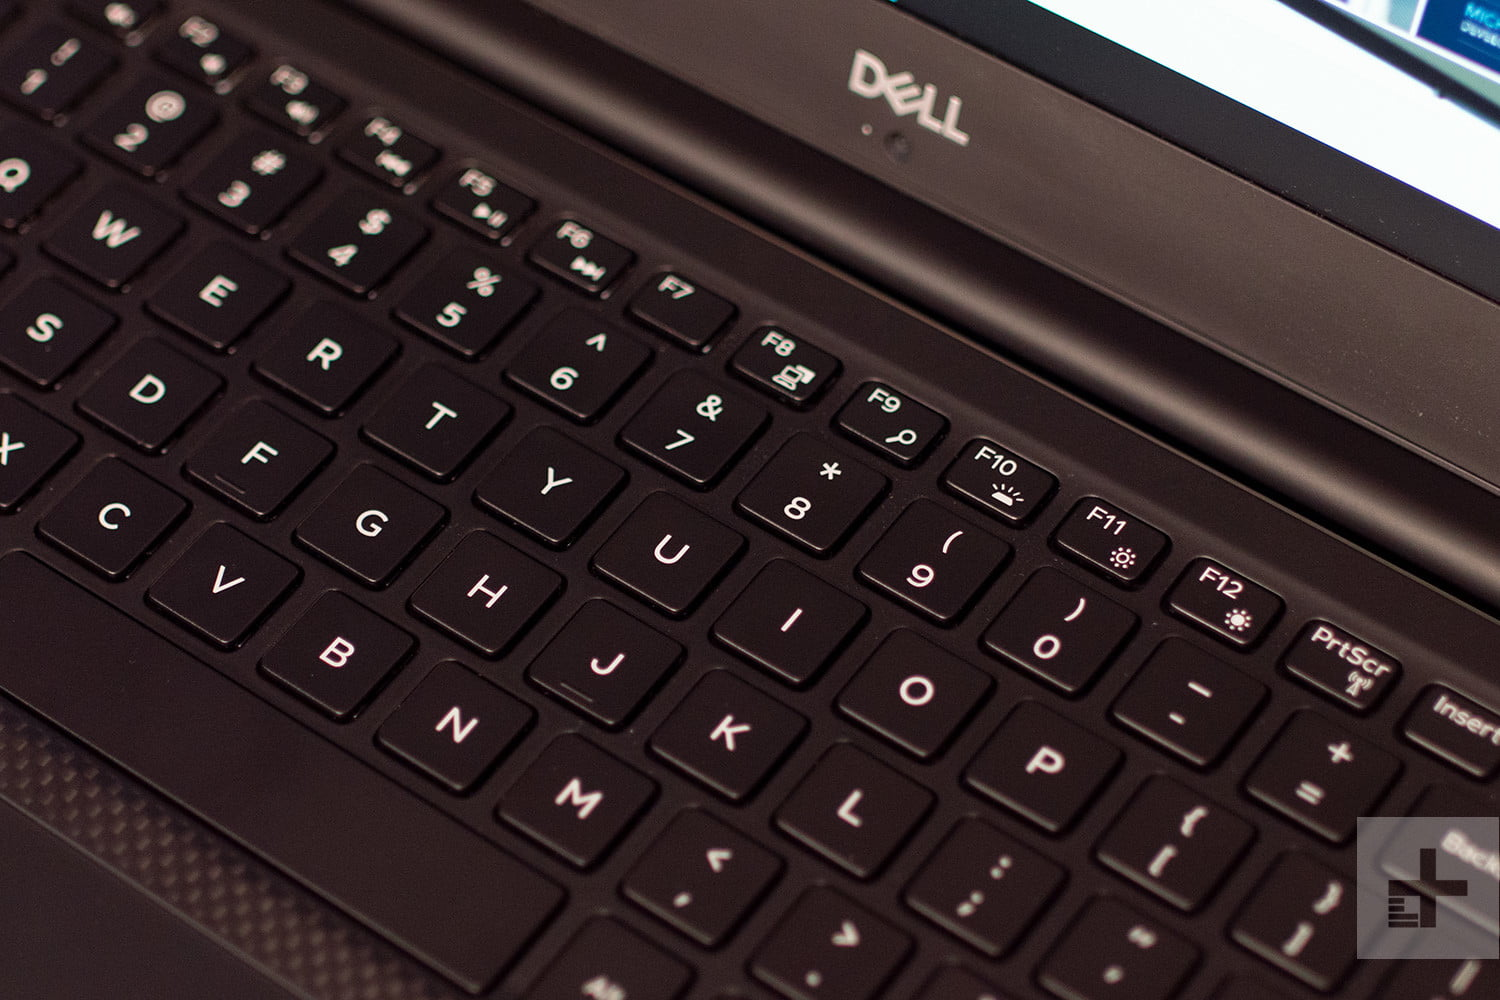 Dell XPS 15 9570 keyboard close